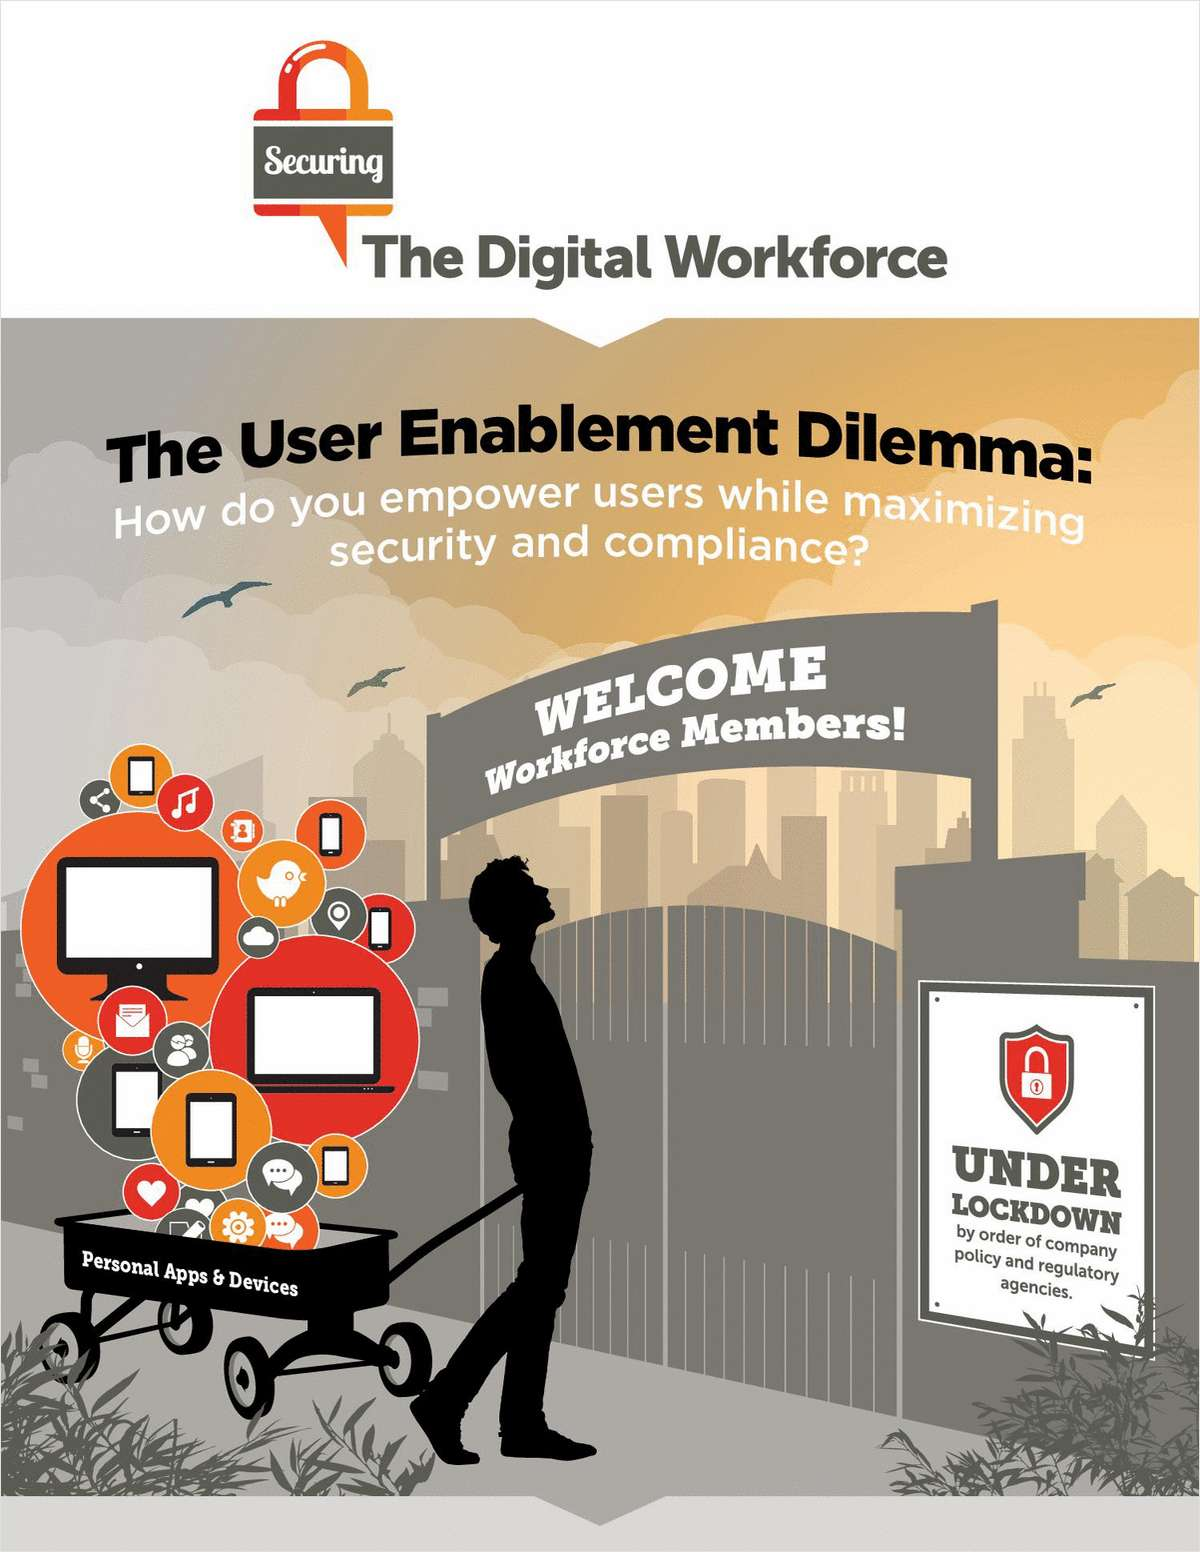 Empower Users While Maximizing Security and Compliance